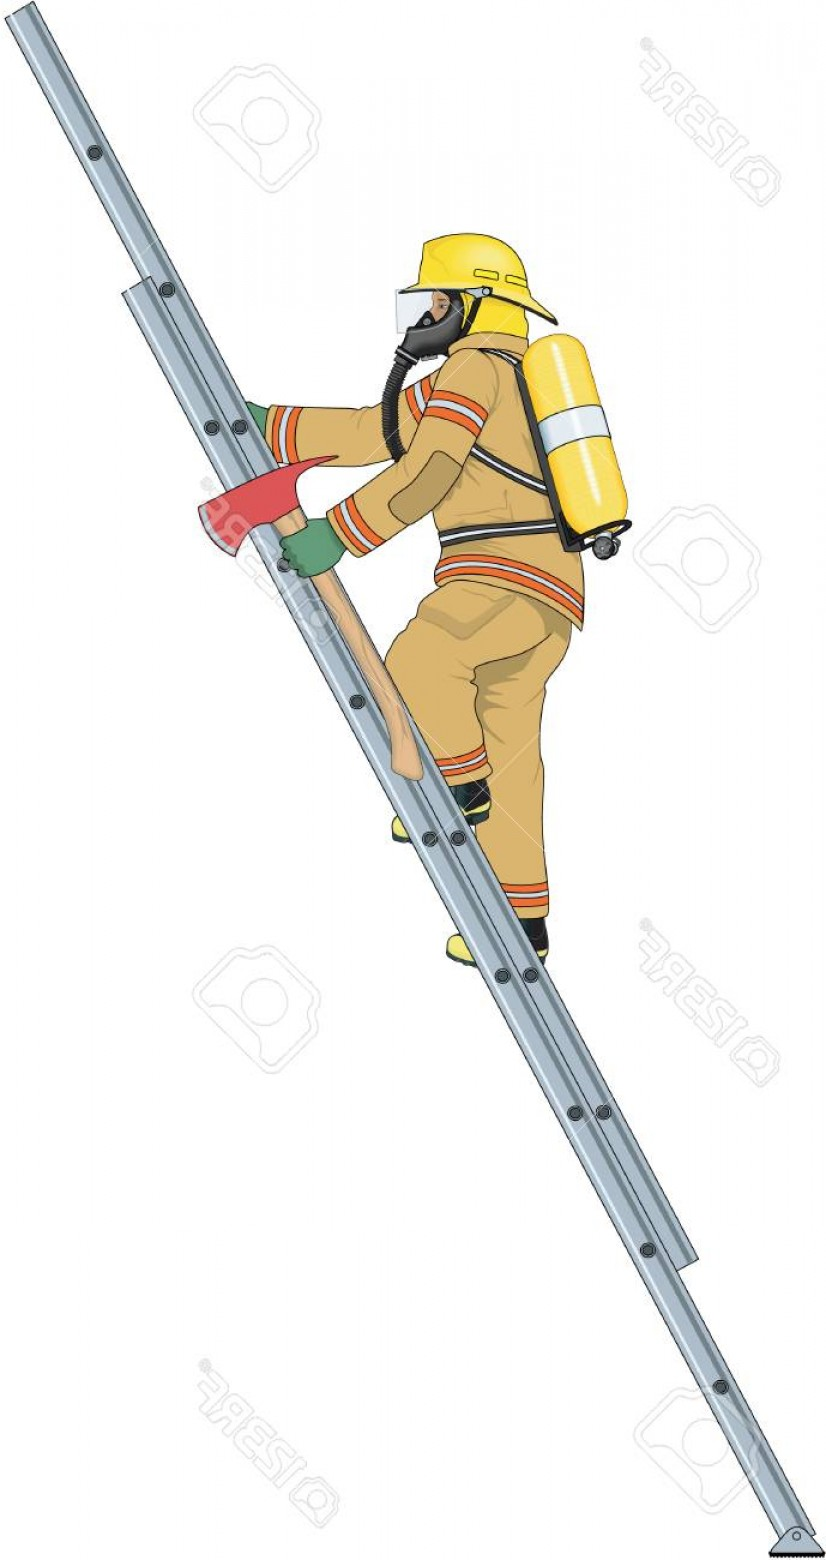 Maltese Cross Solid Vector: Photostock Vector Firefighter Climbing Ladder Illustration